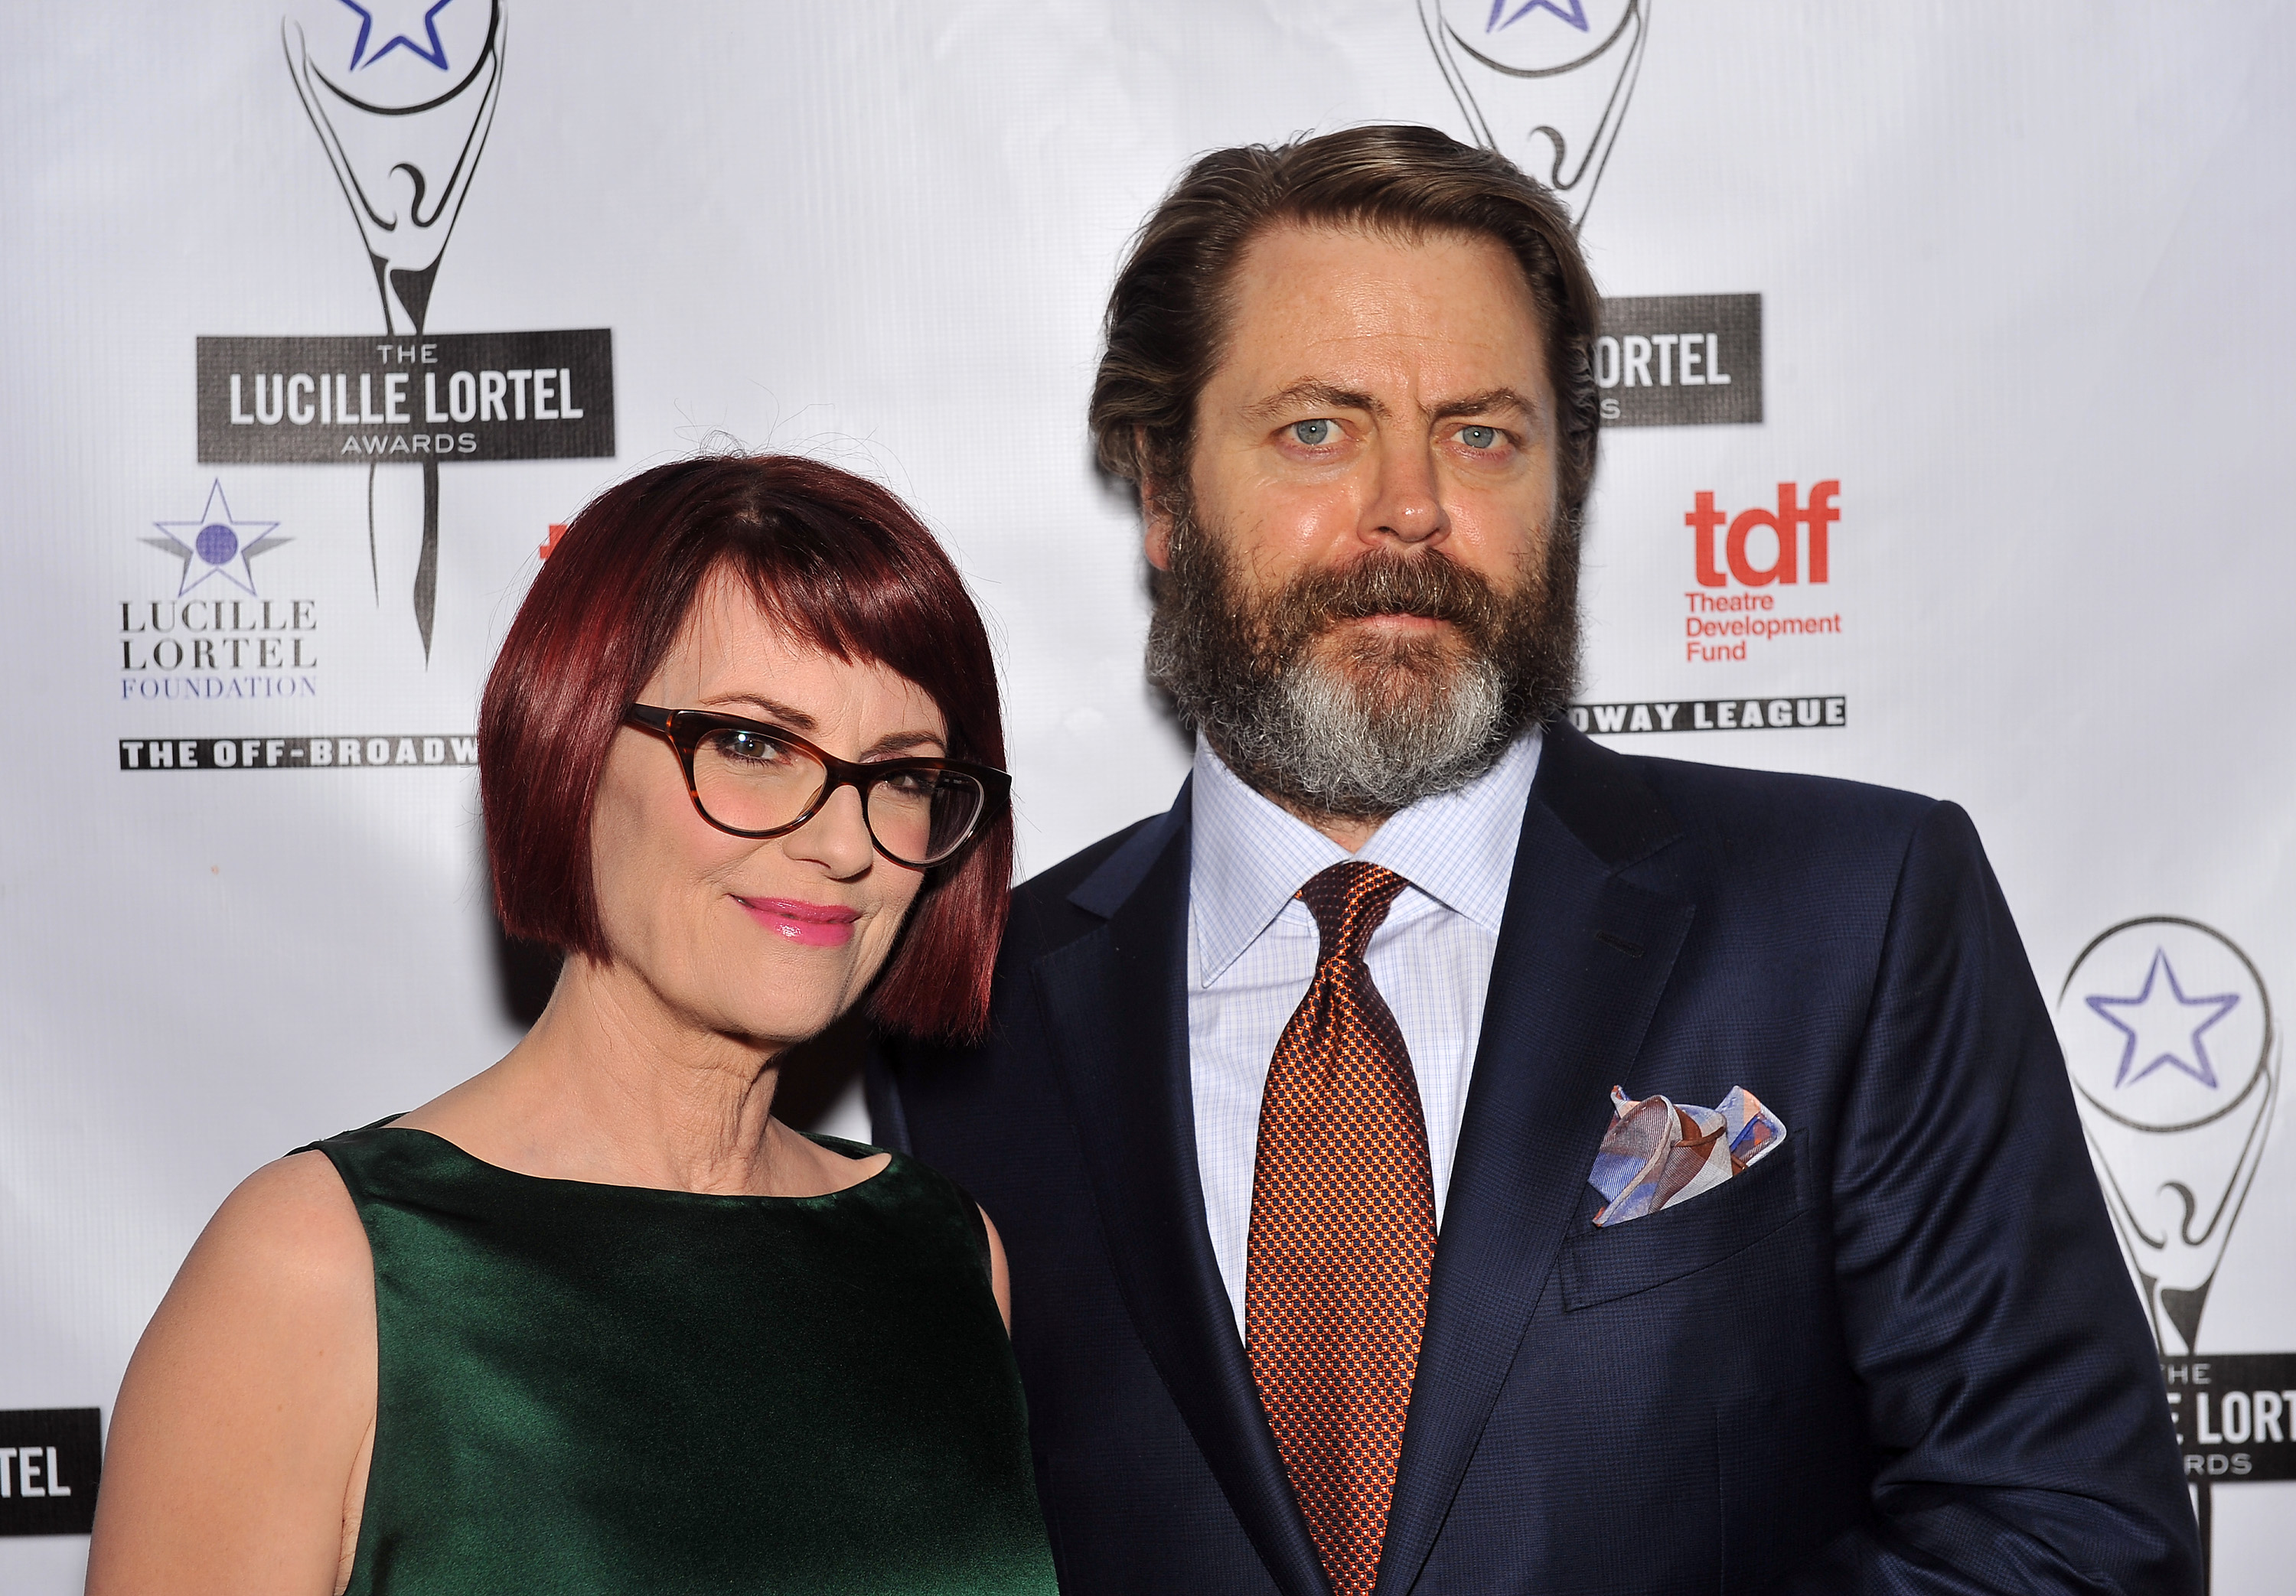 Actors Megan Mullally and Nick Offerman cancelled a show in Indiana as a result of the bill being passed. (Getty)